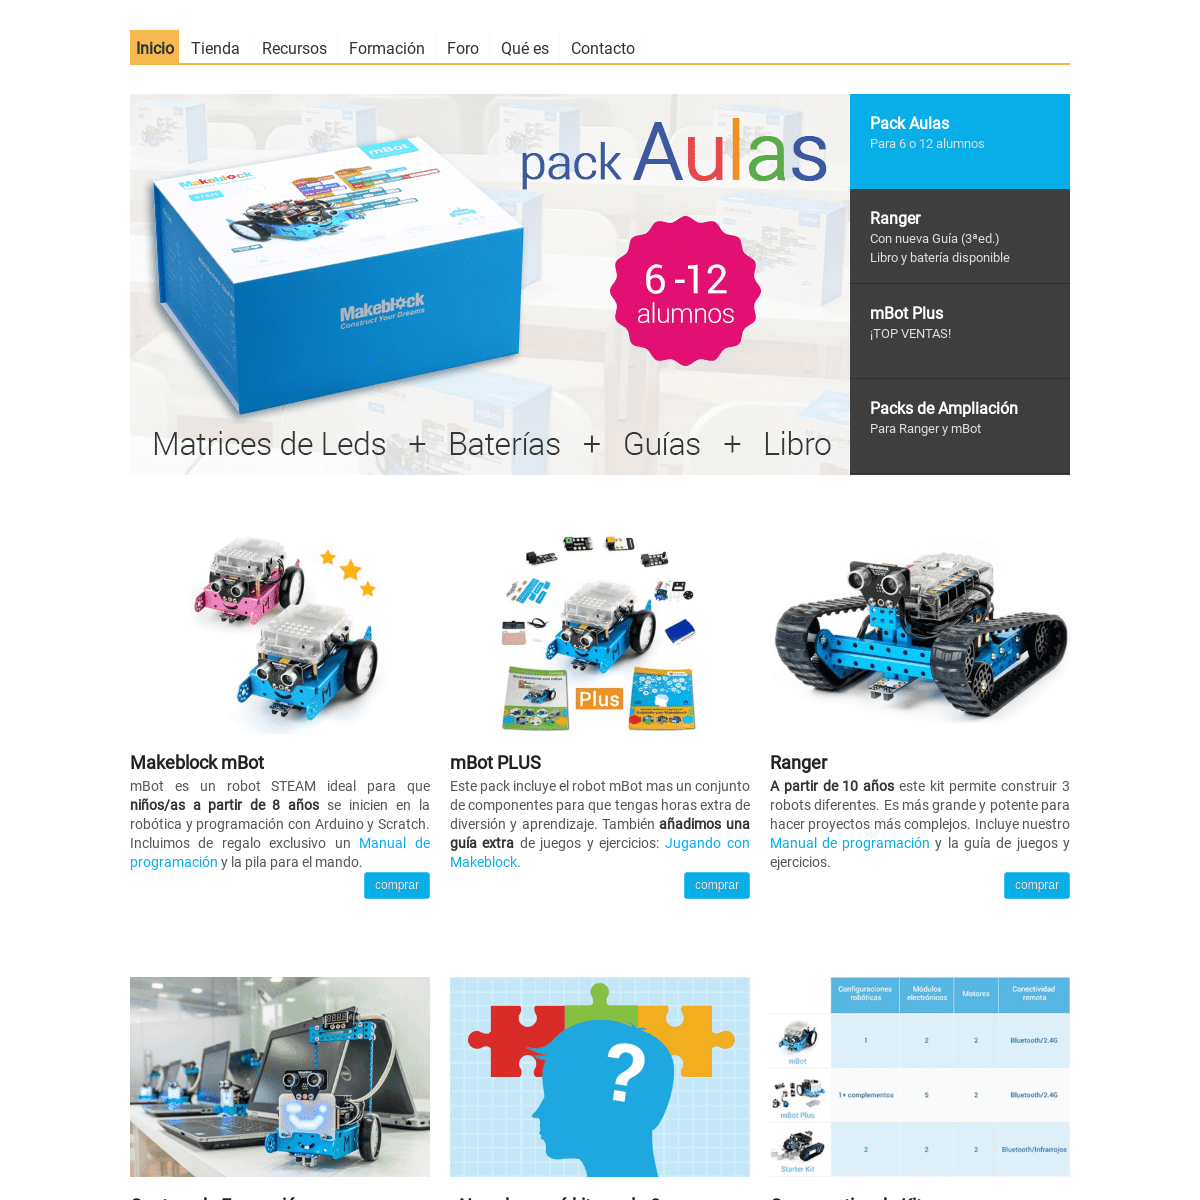 ArchiveBay.com - makeblock.es - Venta de productos Makeblock y Compatibles en España - Robótica Educativa Open Source